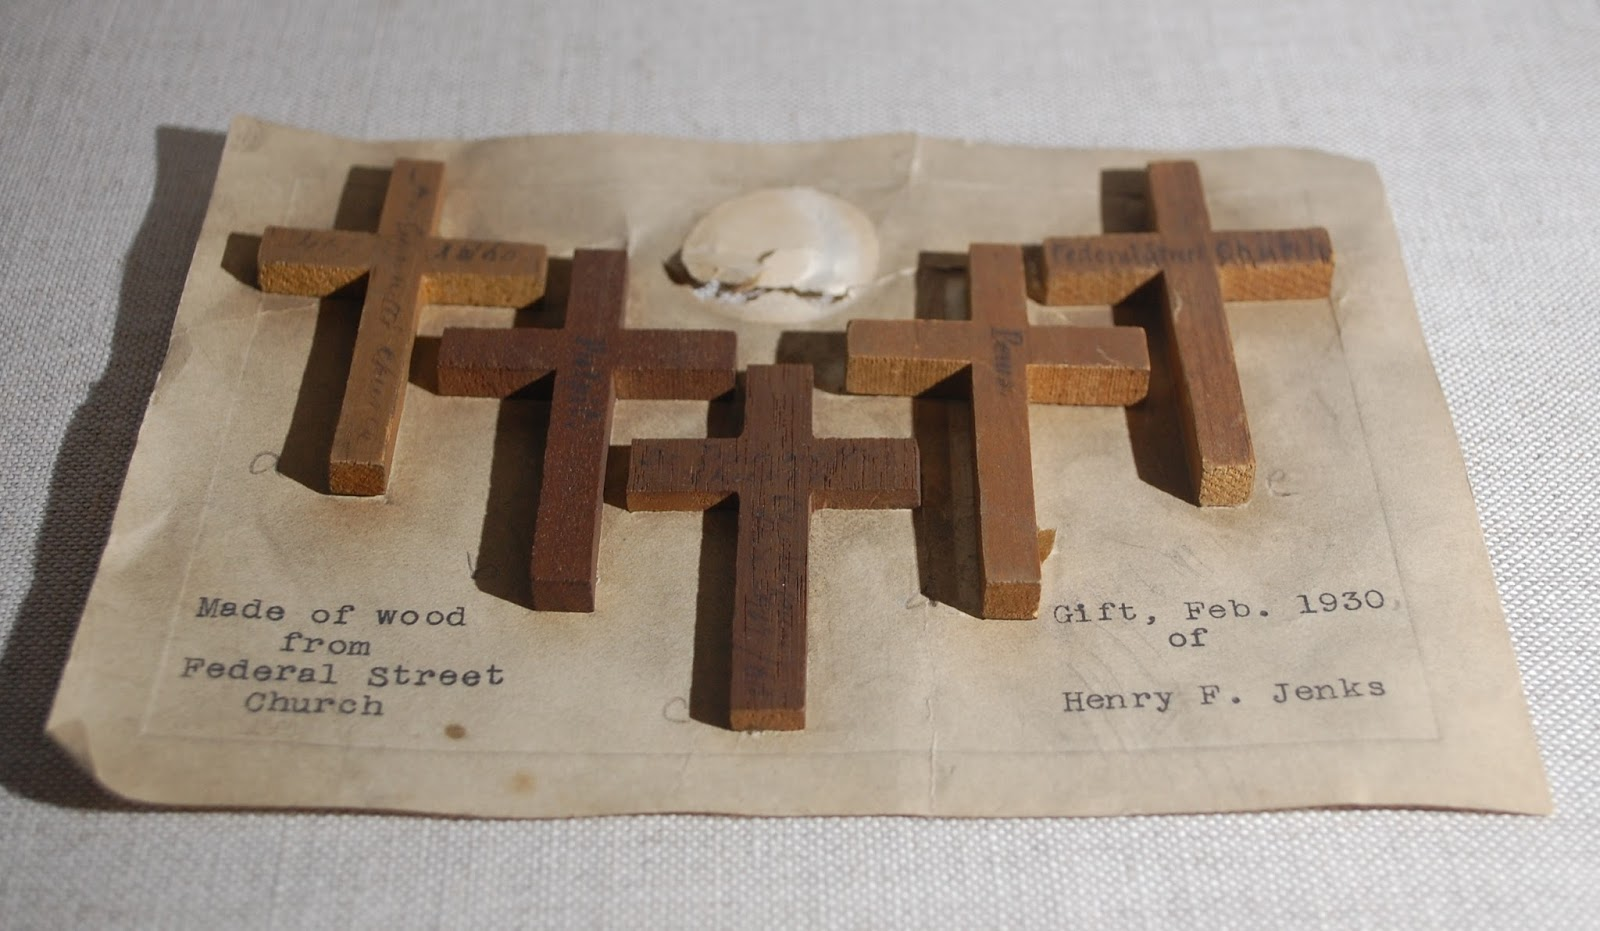 """1930.0008.002 a-fNote reads, """"Made of wood from FederalStreet Church. Gift, Feb. 1930 of Henry F Jenks."""""""